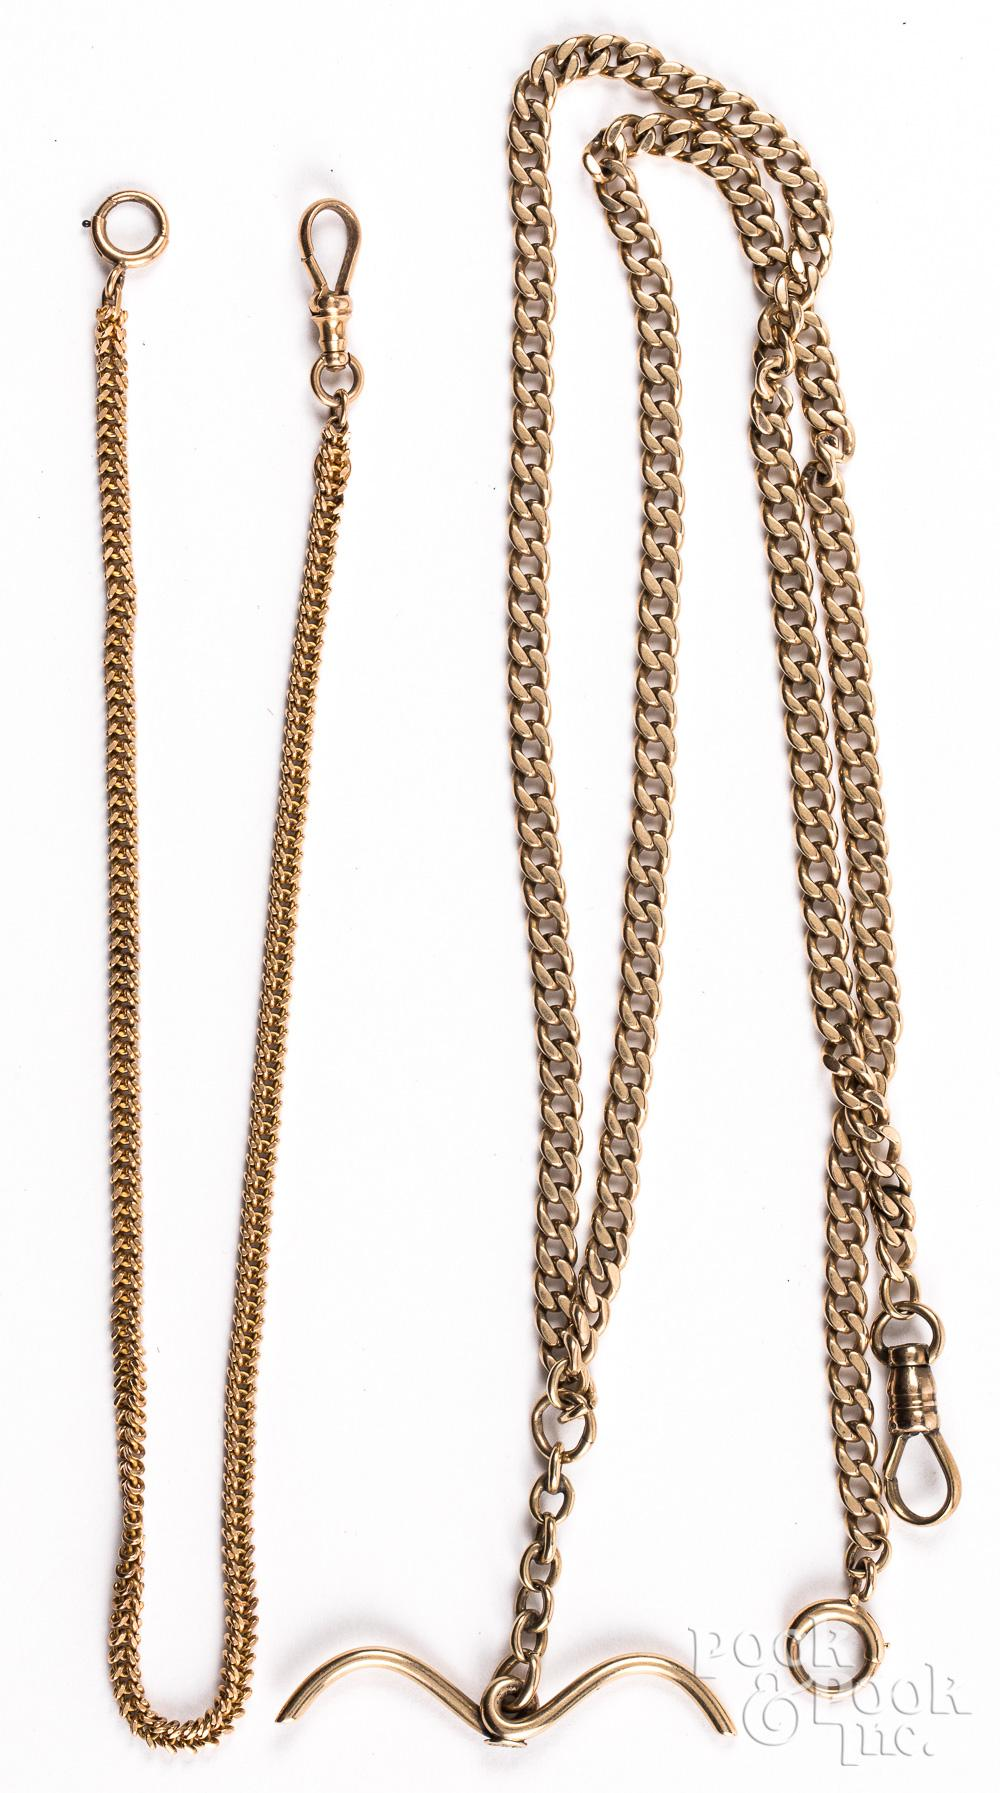 Two 14K gold watch fob chains, 32.4 dwt.